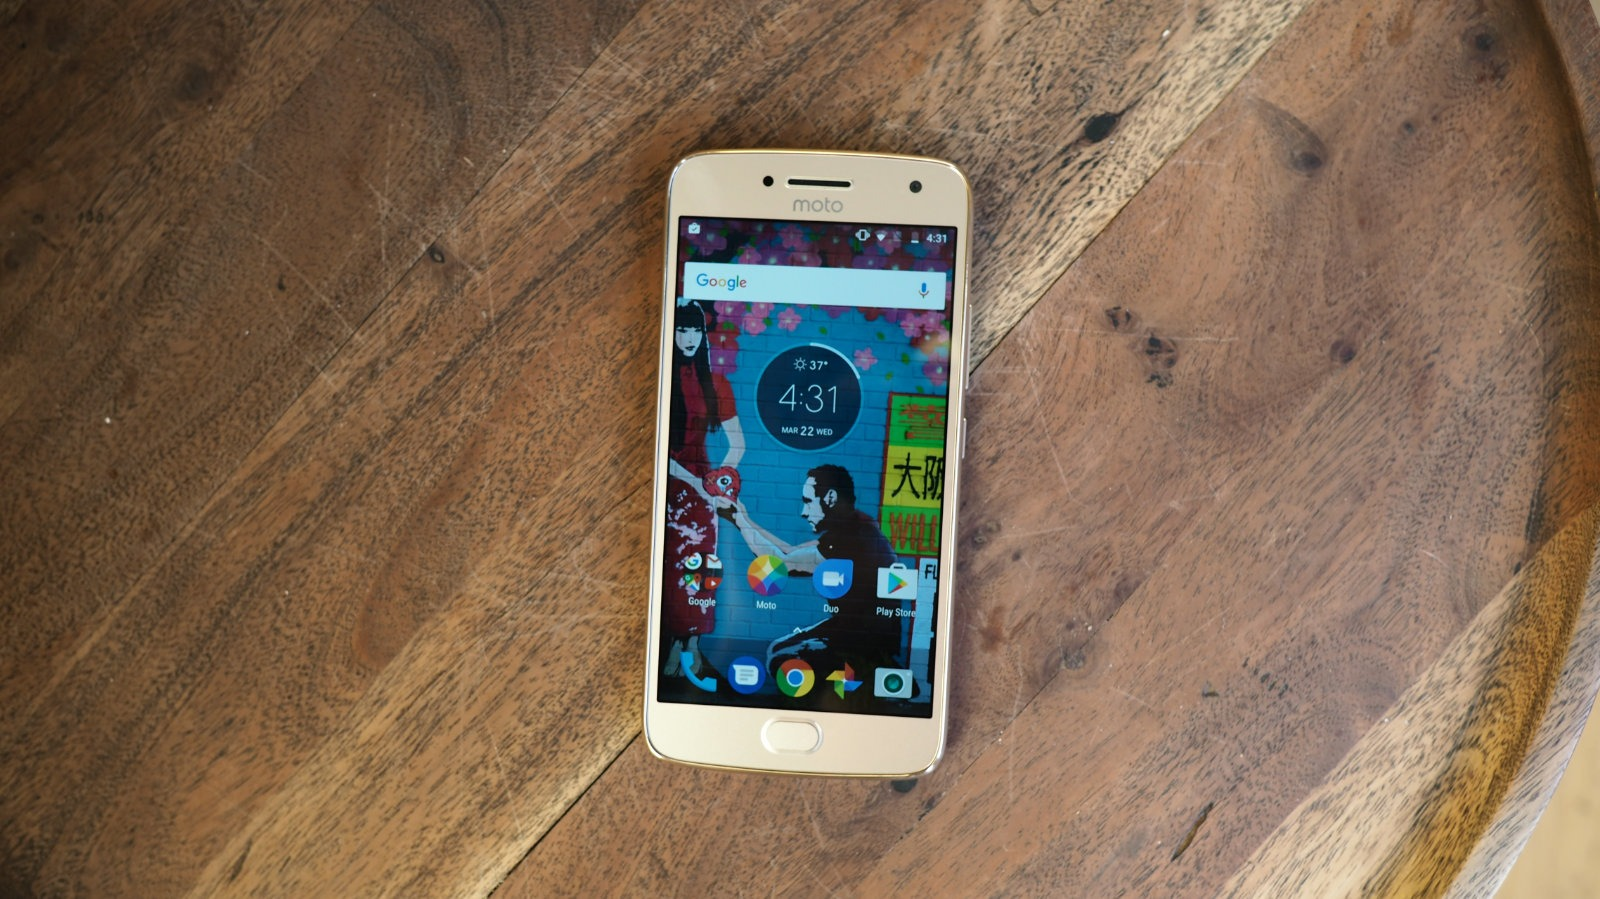 Moto G5 Plus users get no Android Oreo update despite the news about rollout! 1